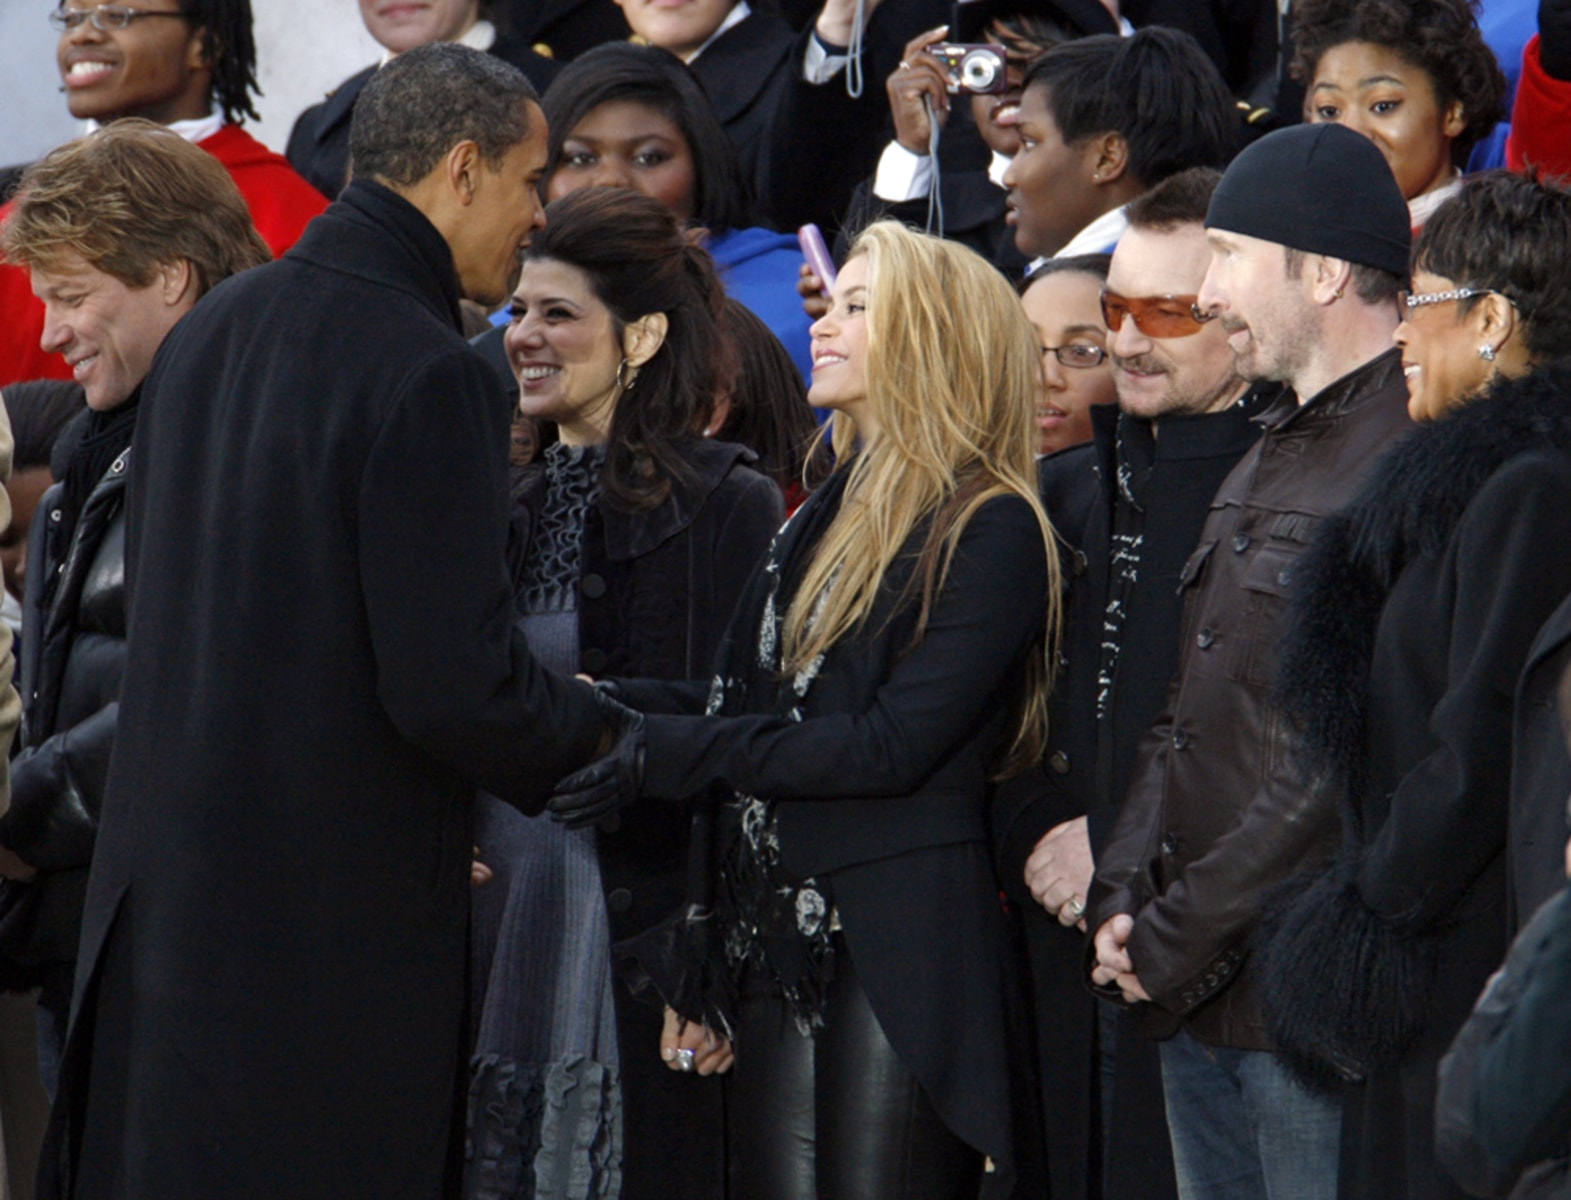 President-elect Obama greets Jon Bon Jovi, Marisa Tomei, Shakira, Bono, The Edge, Bettye Lavette during the We Are One - Opening Inaugural Celebration at the Lincoln Memorial in Washington